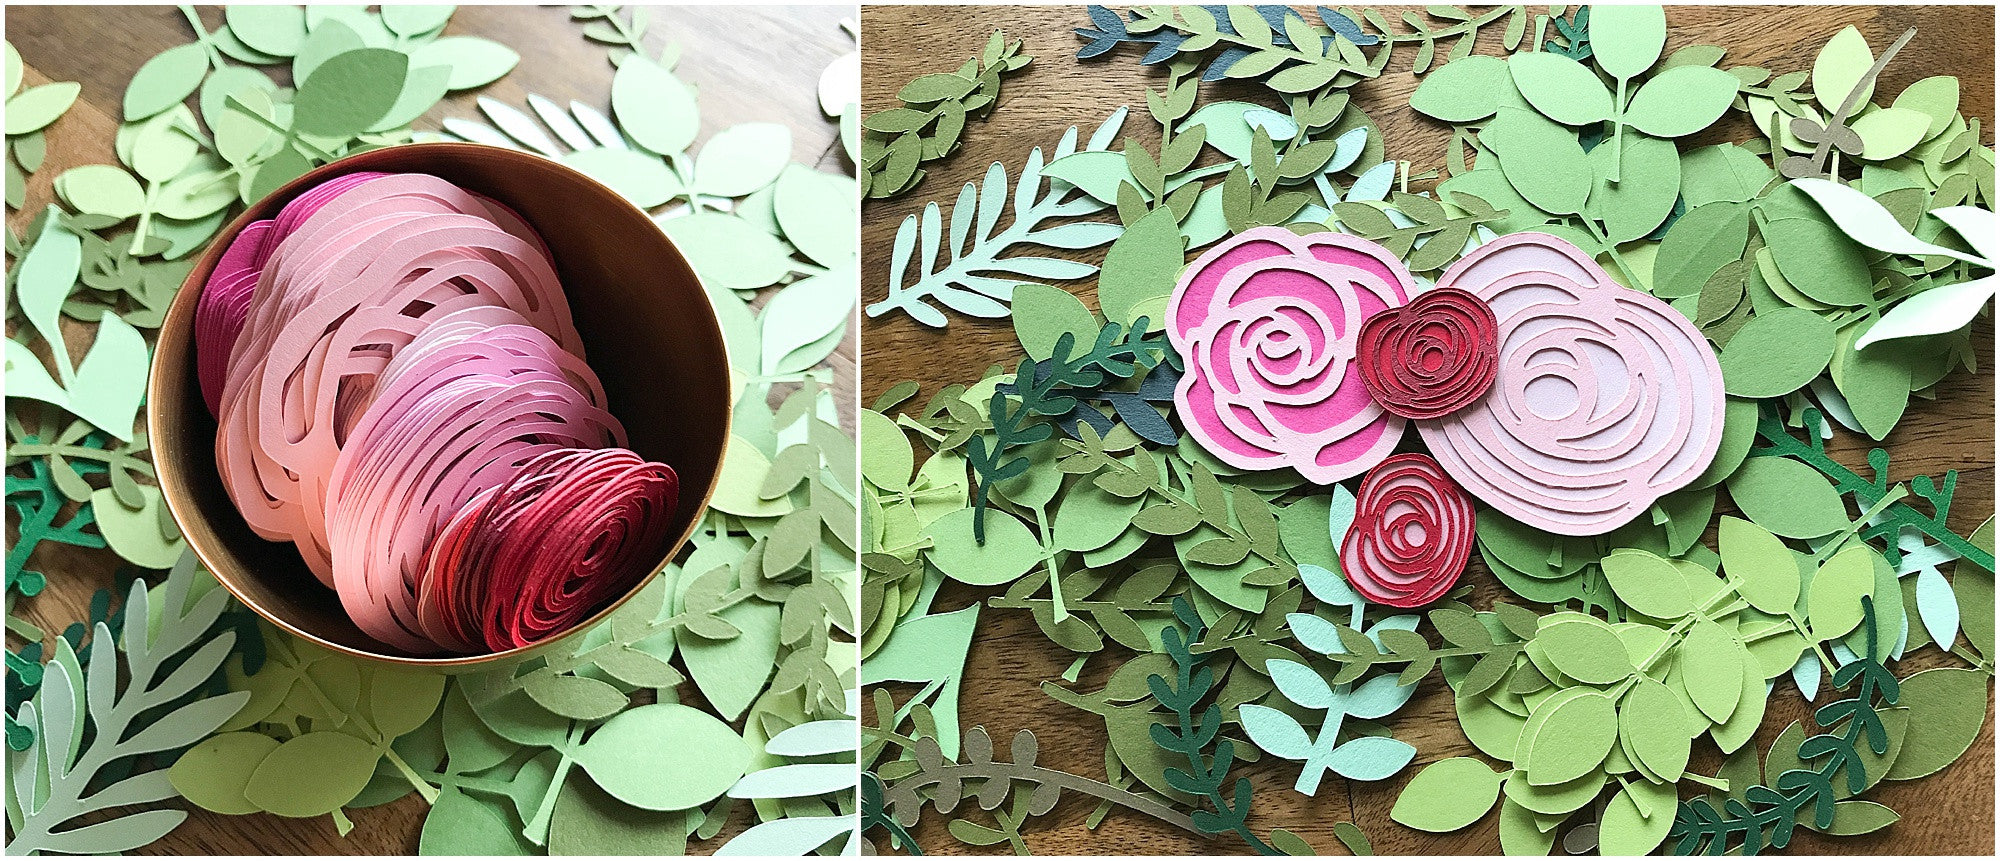 die cut greenery and flower pieces from cardstock warehouse paper